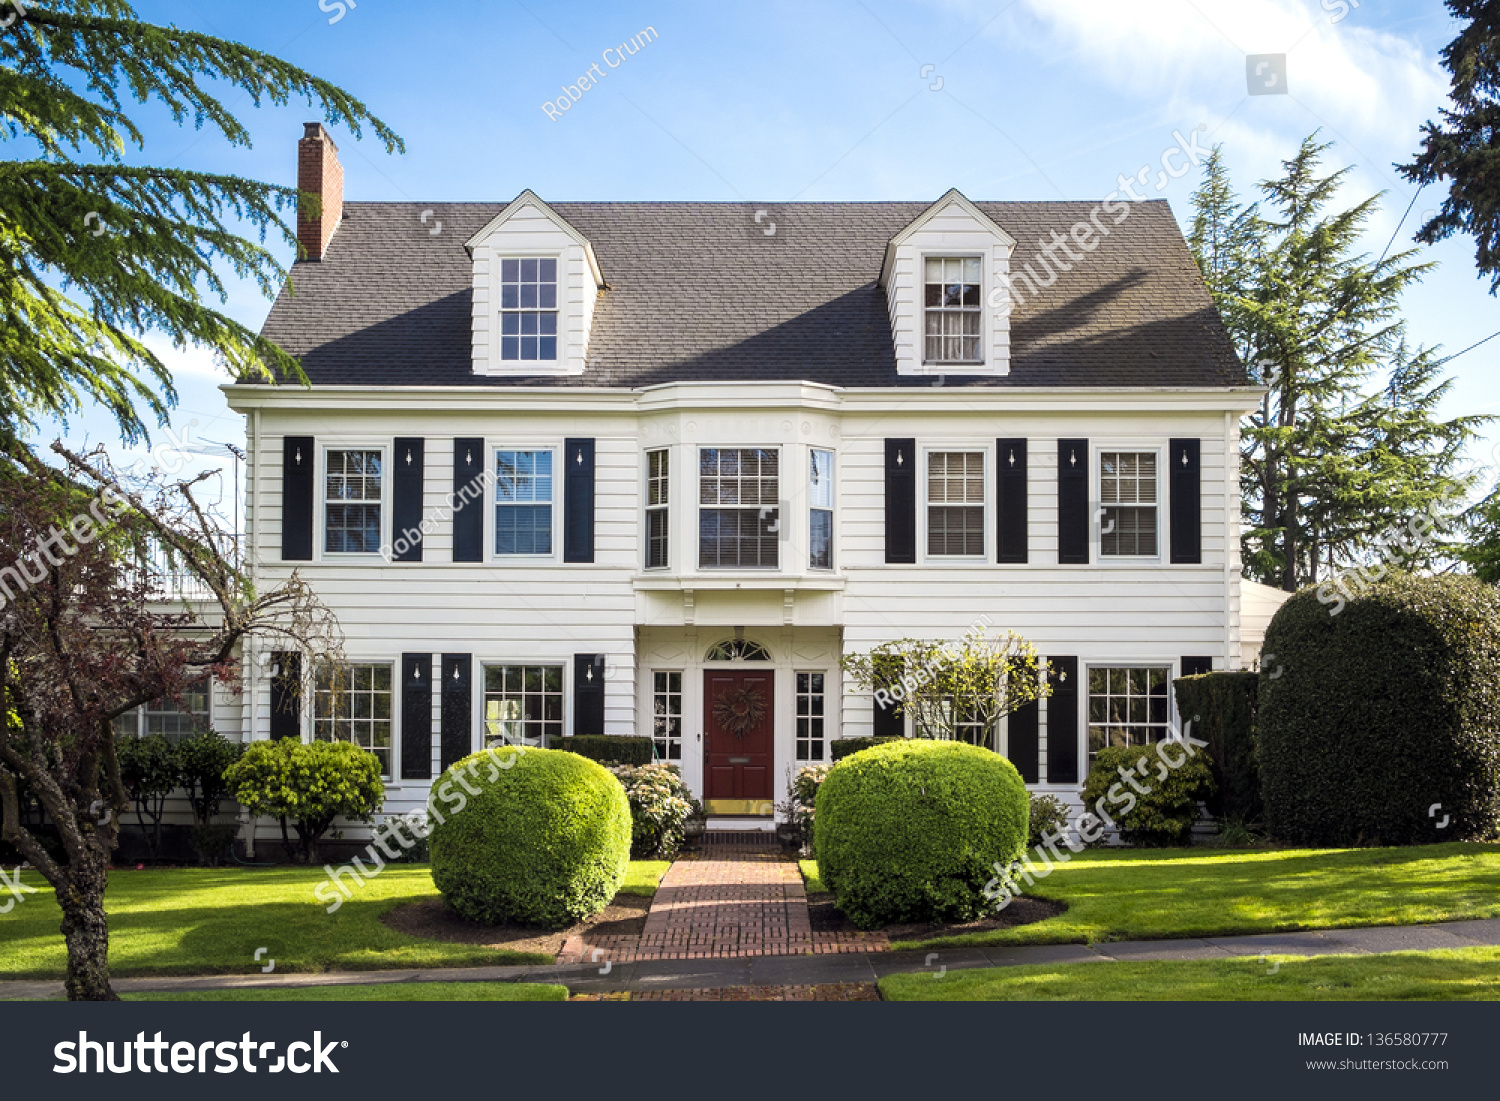 Classic american suburban house blue sky stock photo for The american house